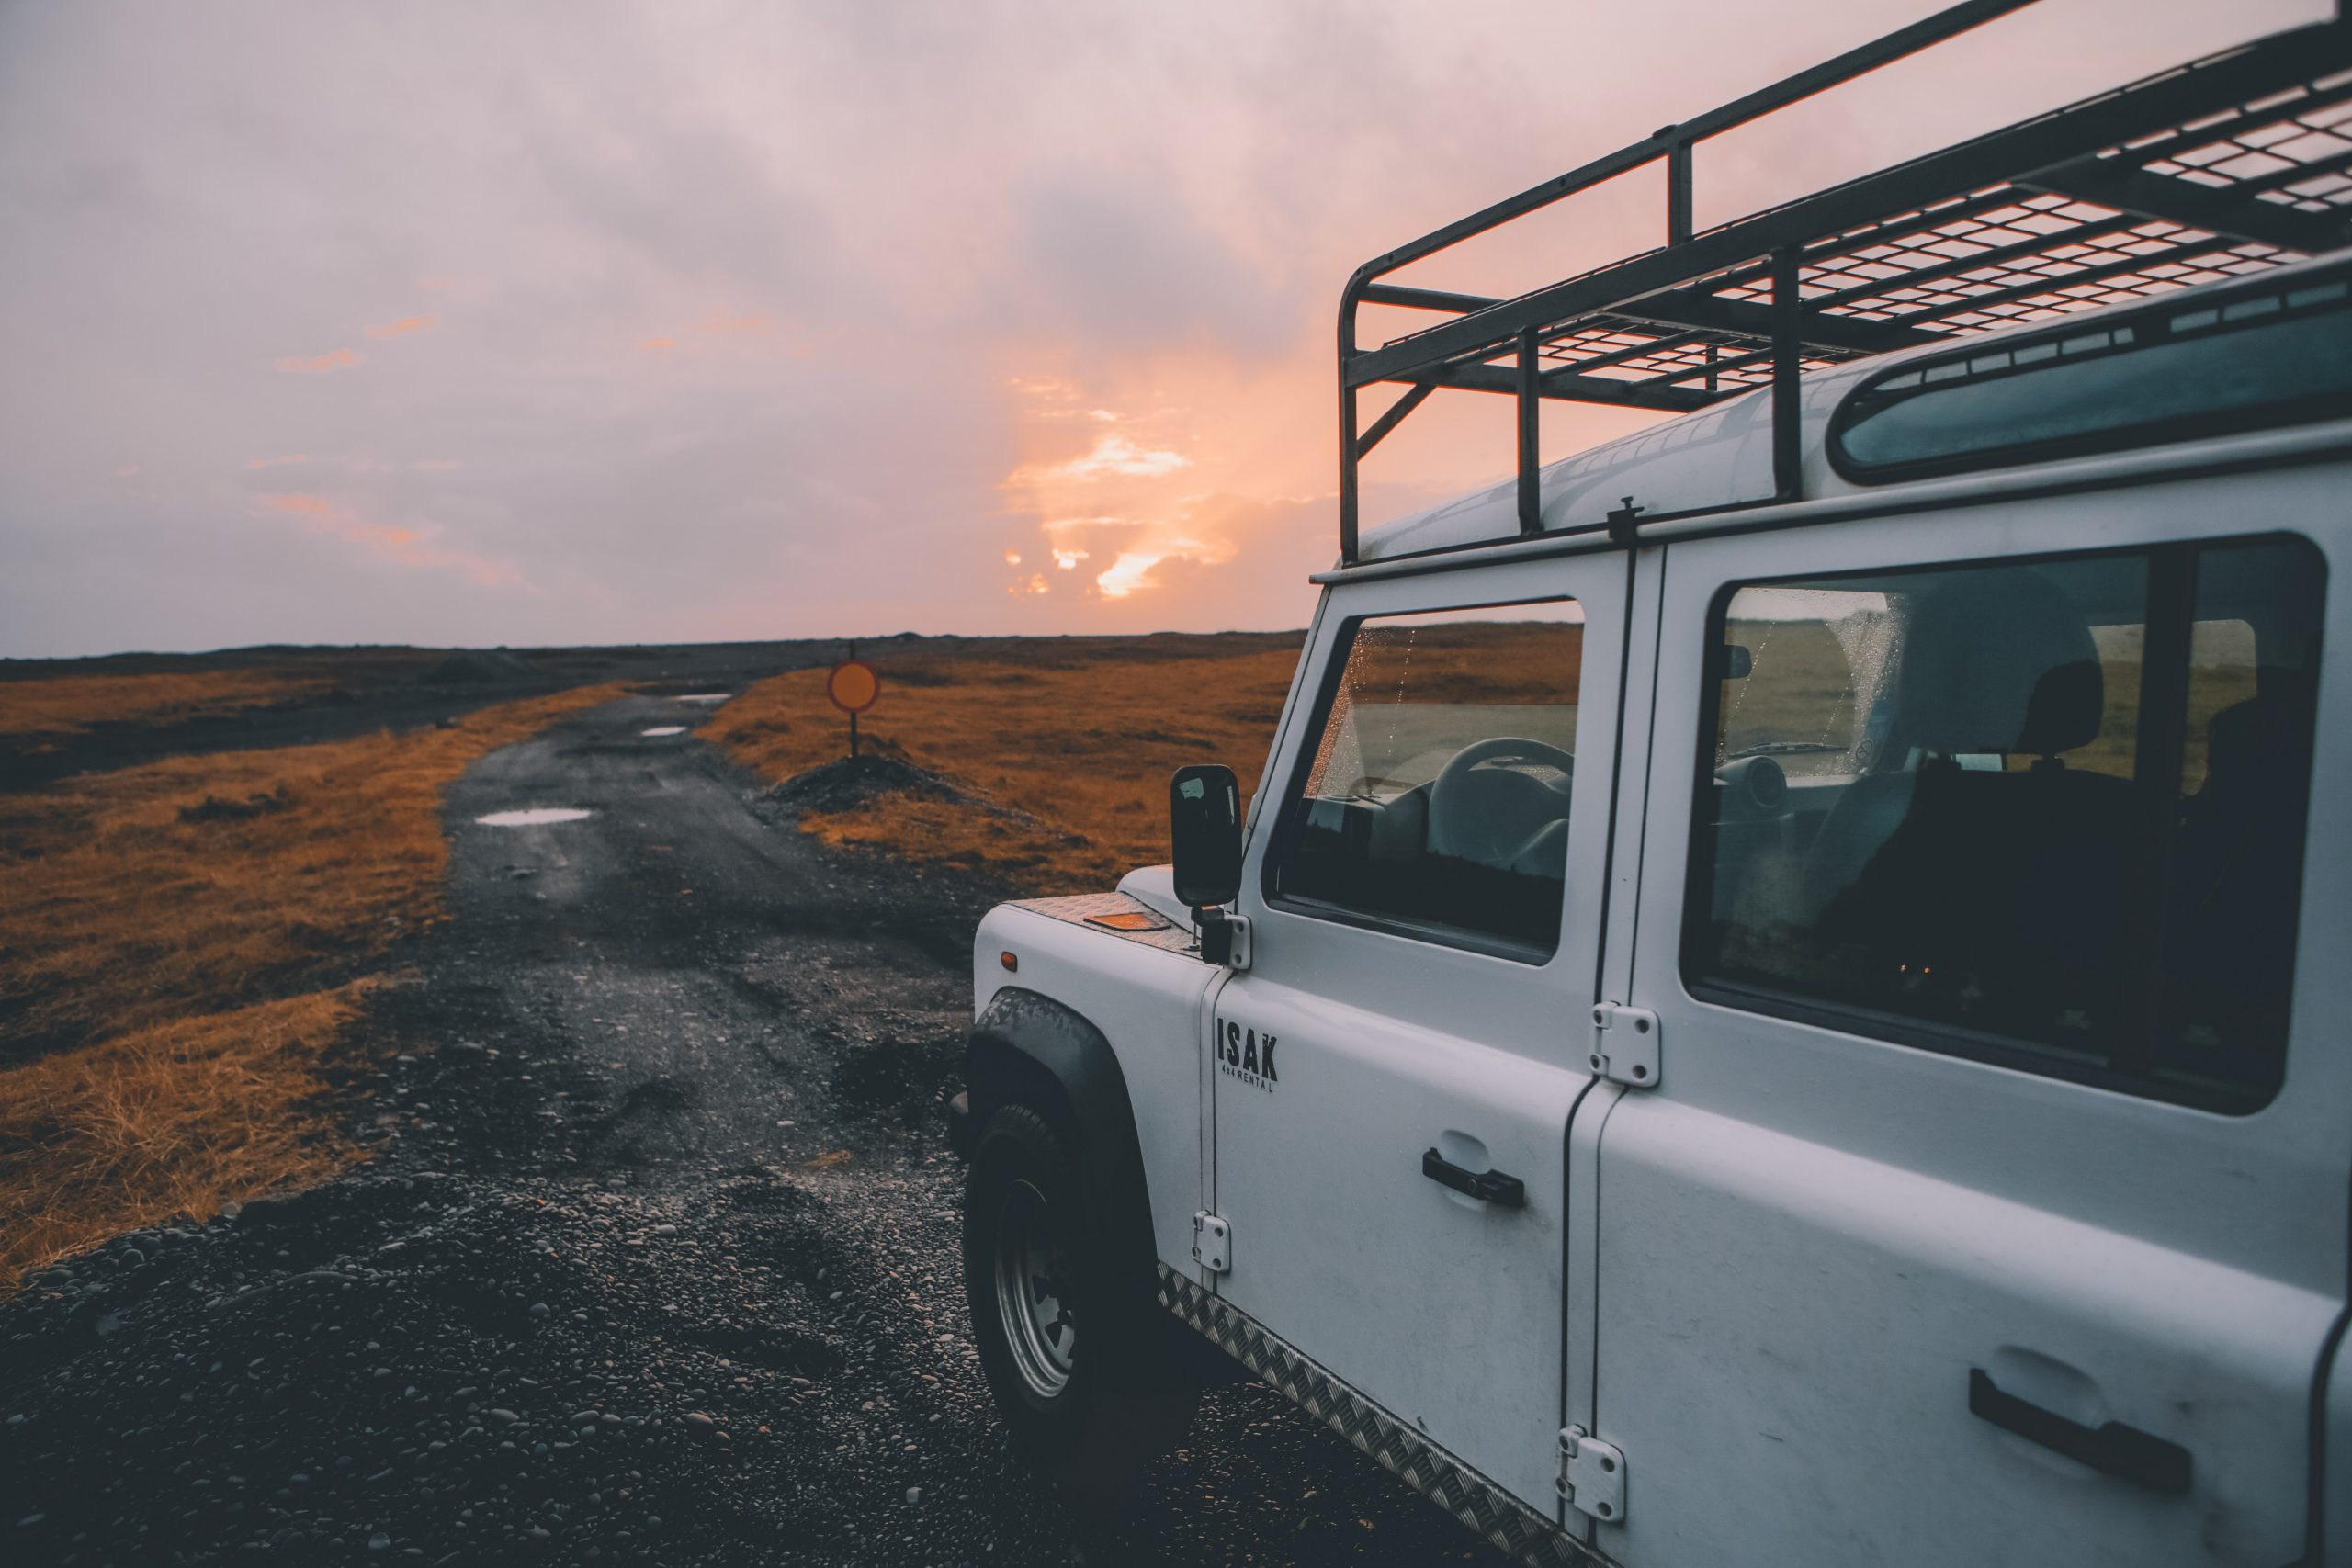 A white van near a road in Iceland.